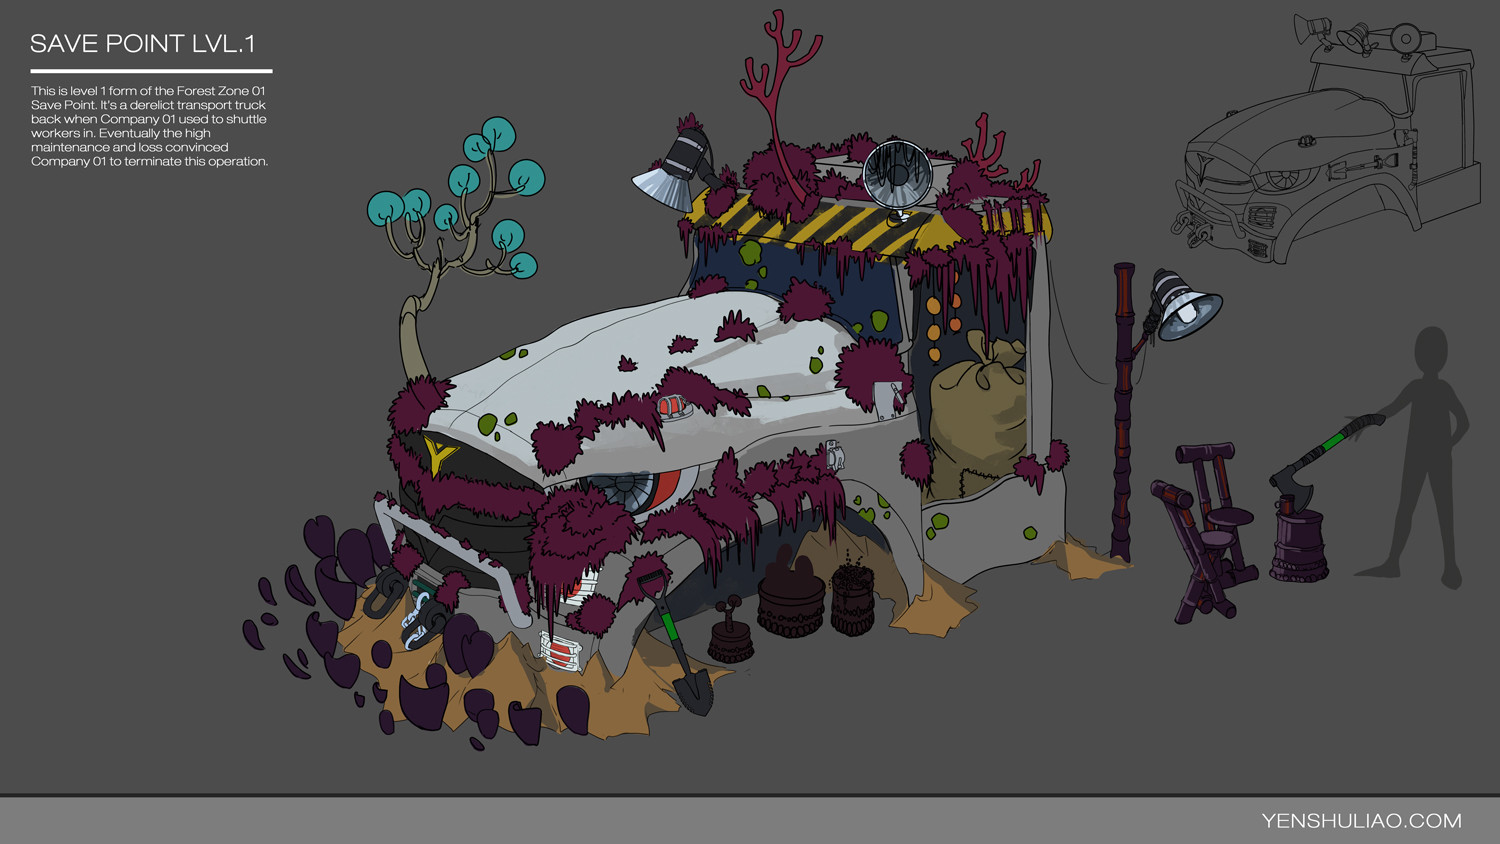 This is one of the important site in this forest zone - a level-able storage shack that is also a save/respawn point :D I never got to finish this further since I had to put this entire idea on hold.